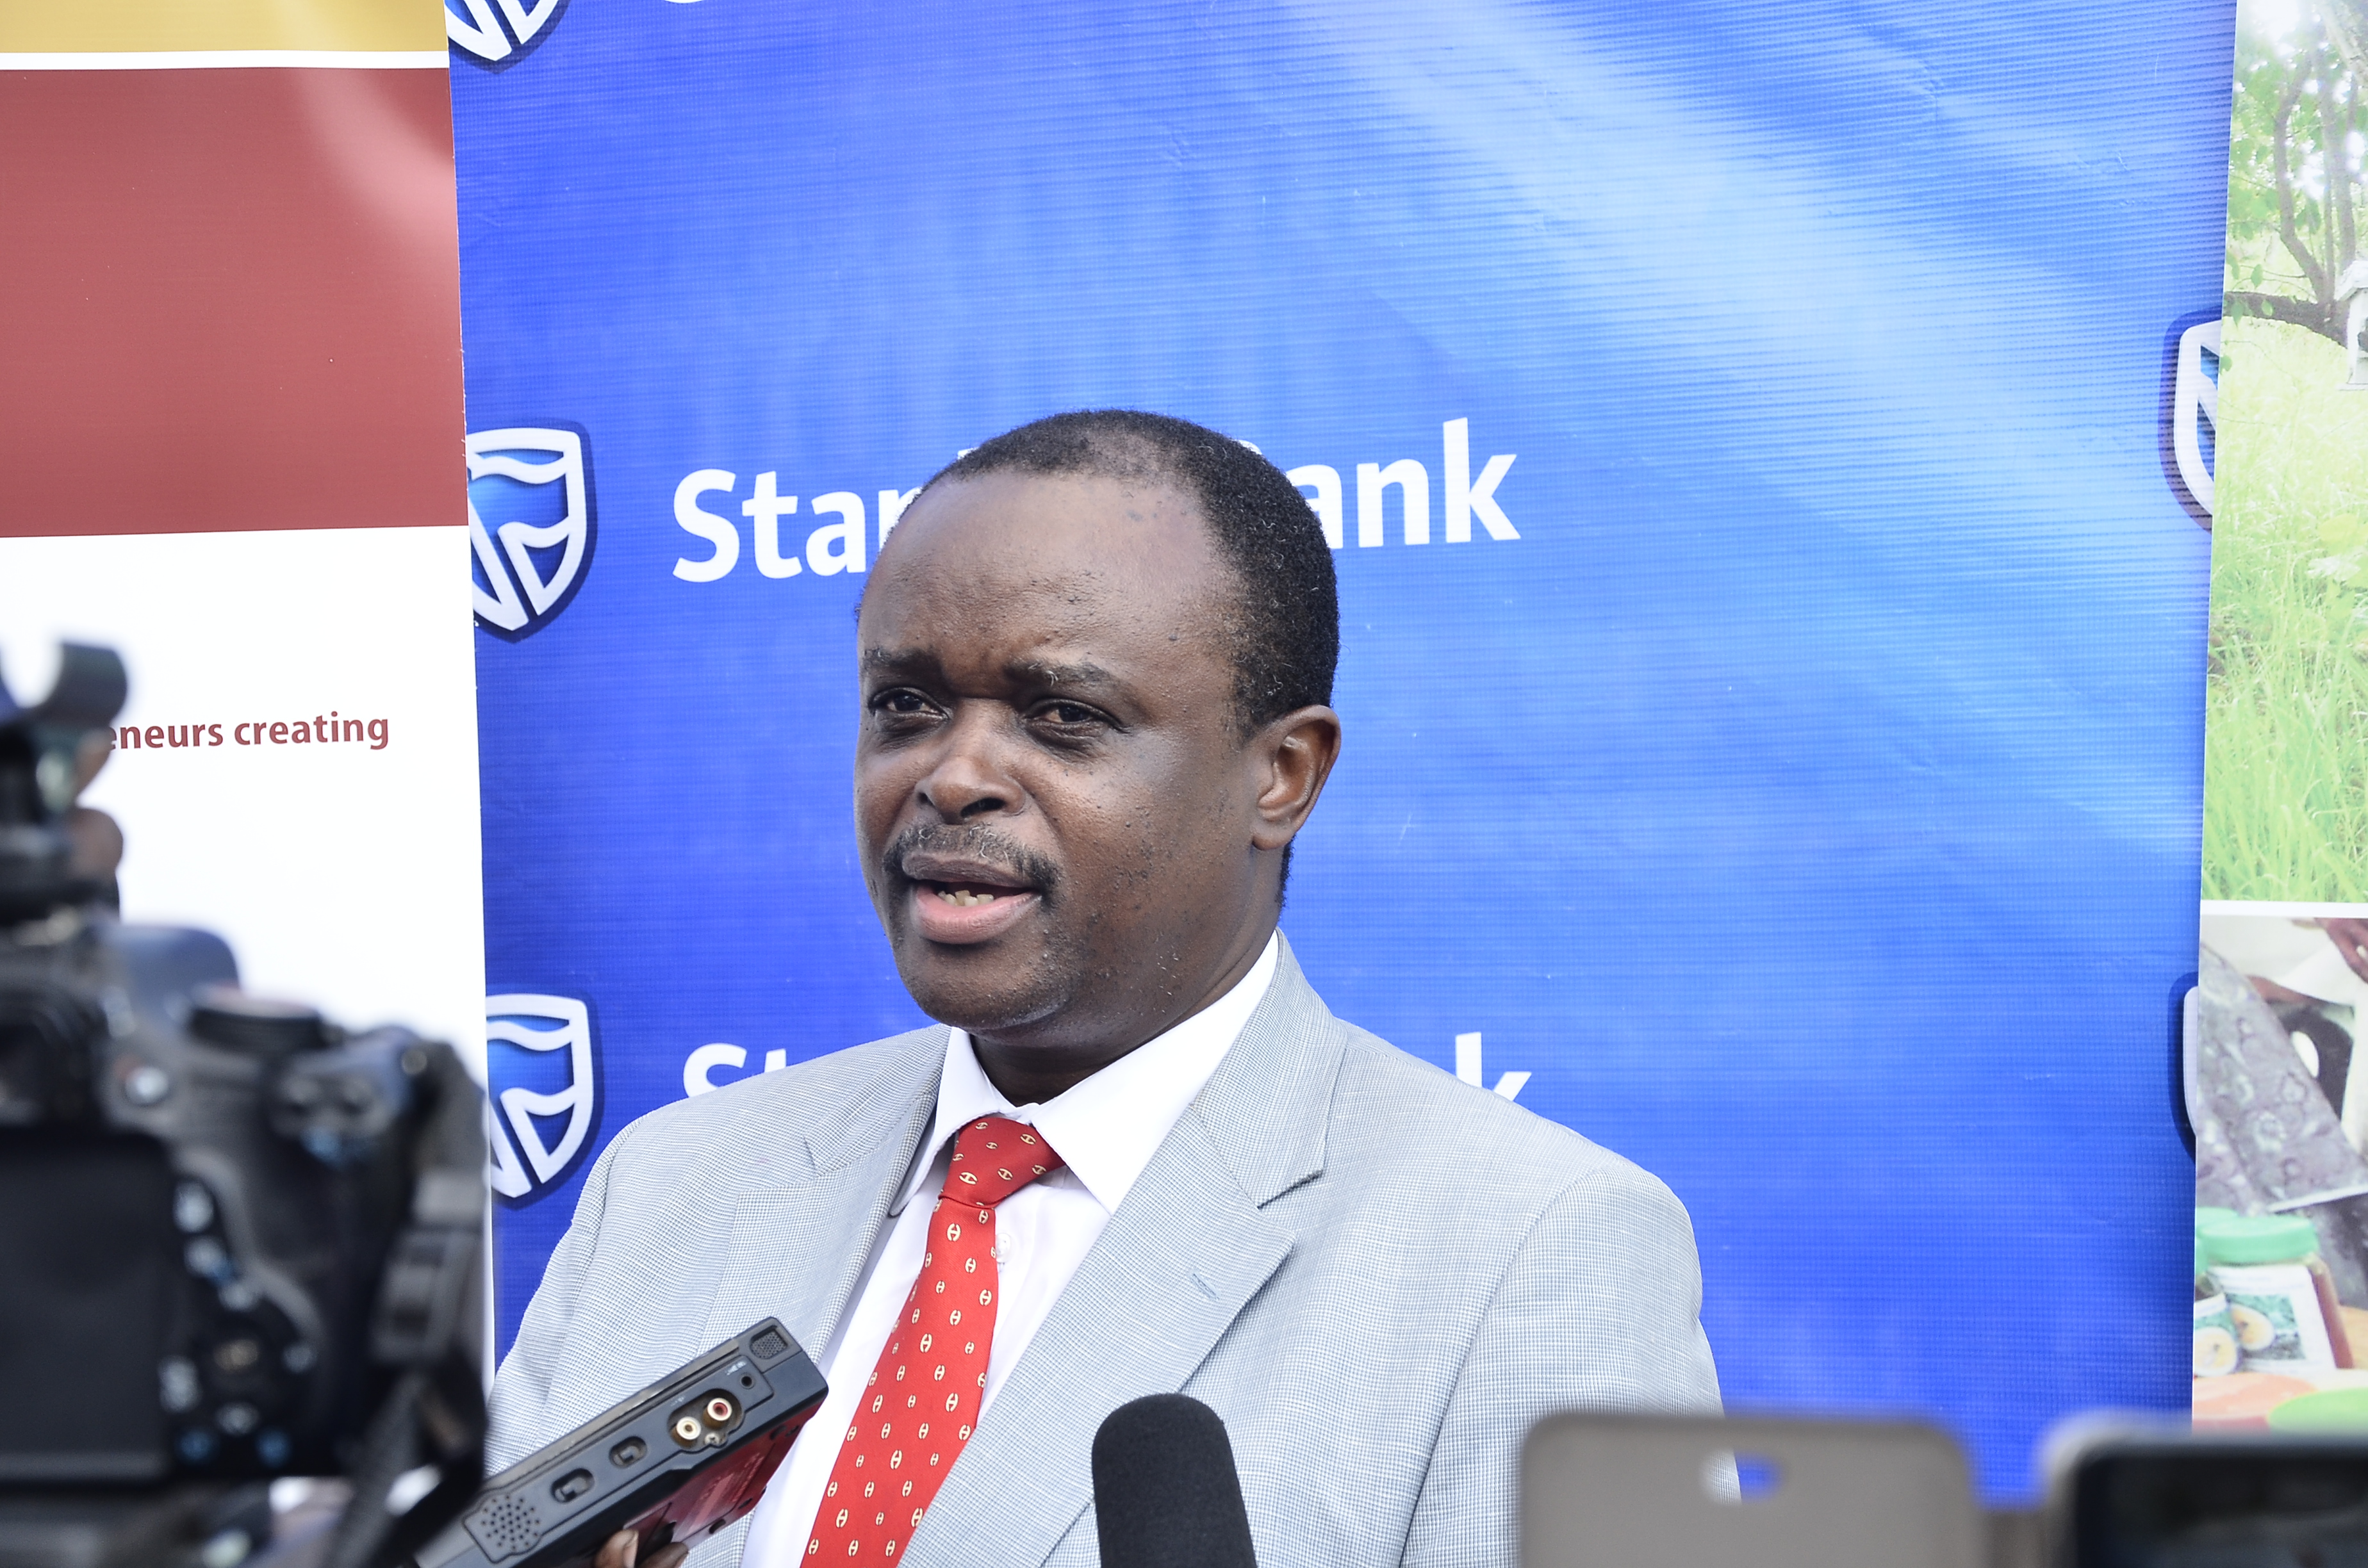 Stanbic Bank Head of Agriculture Lending Richard Wangwe addresses the media after the launch of the partnership with CURAD.